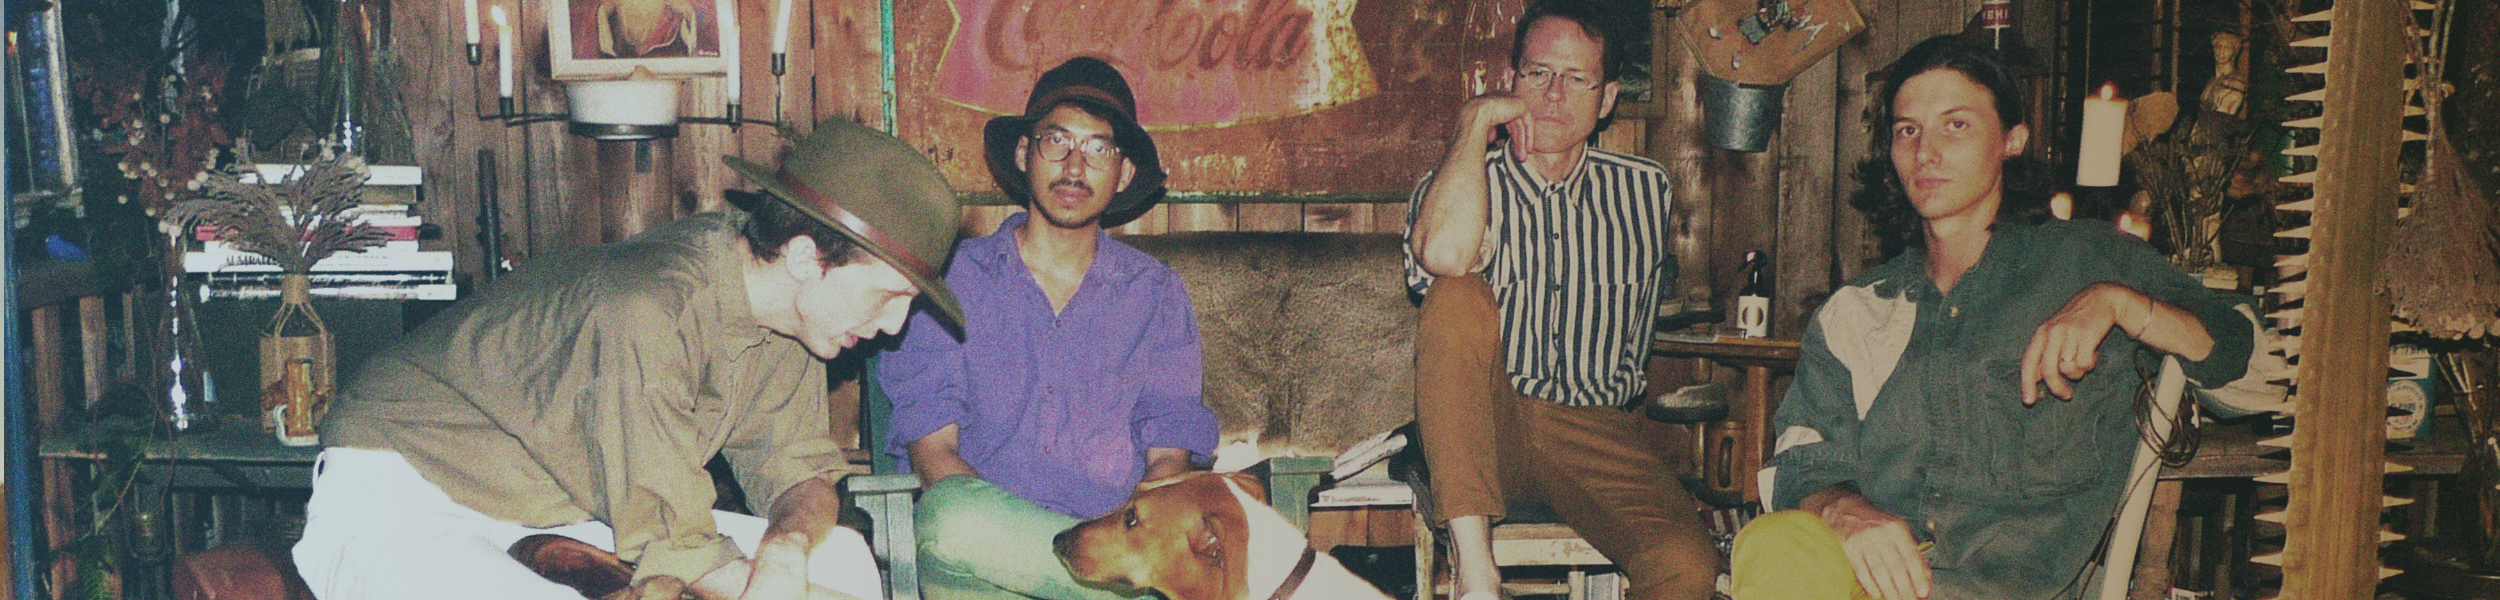 Deerhunter - Deerhunter Announce New U.S. Tour Dates